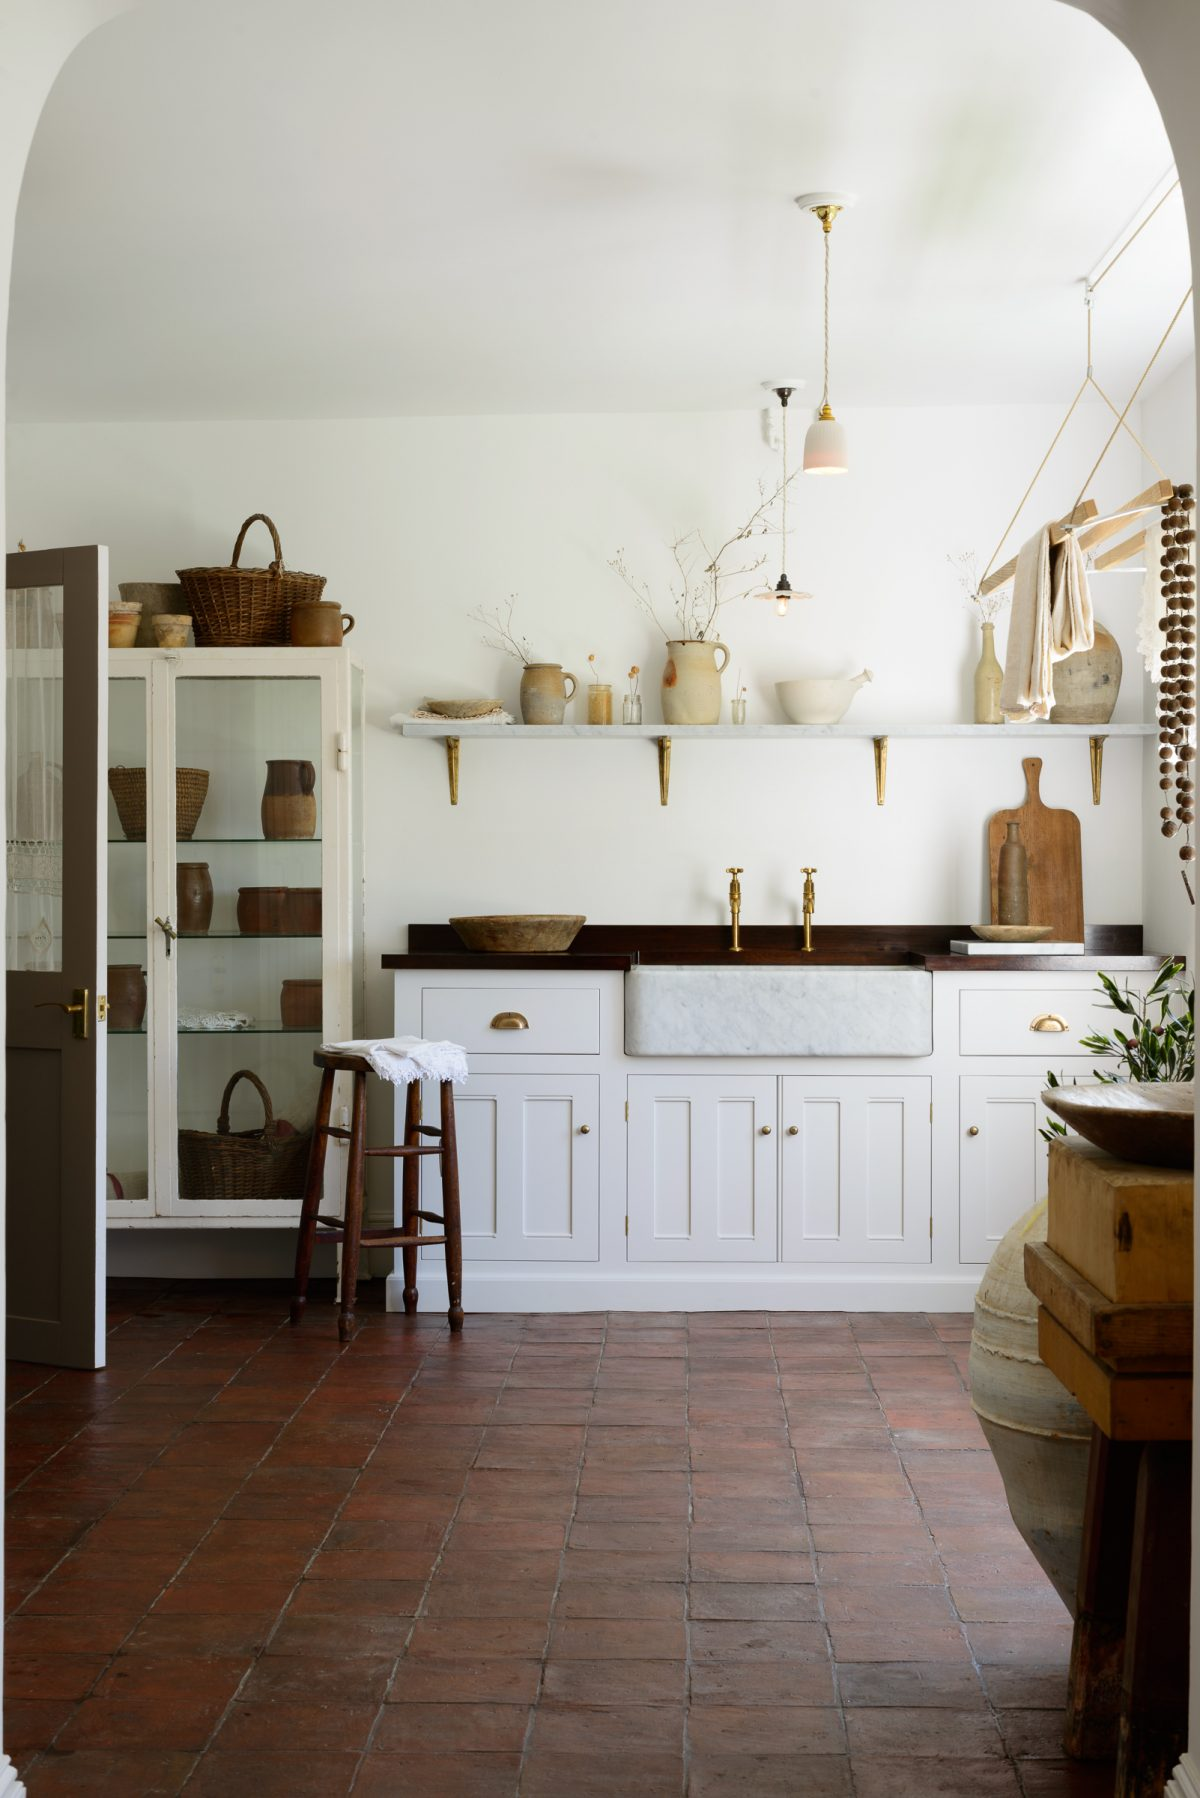 Utility room inspired by old-style Italian kitchens.